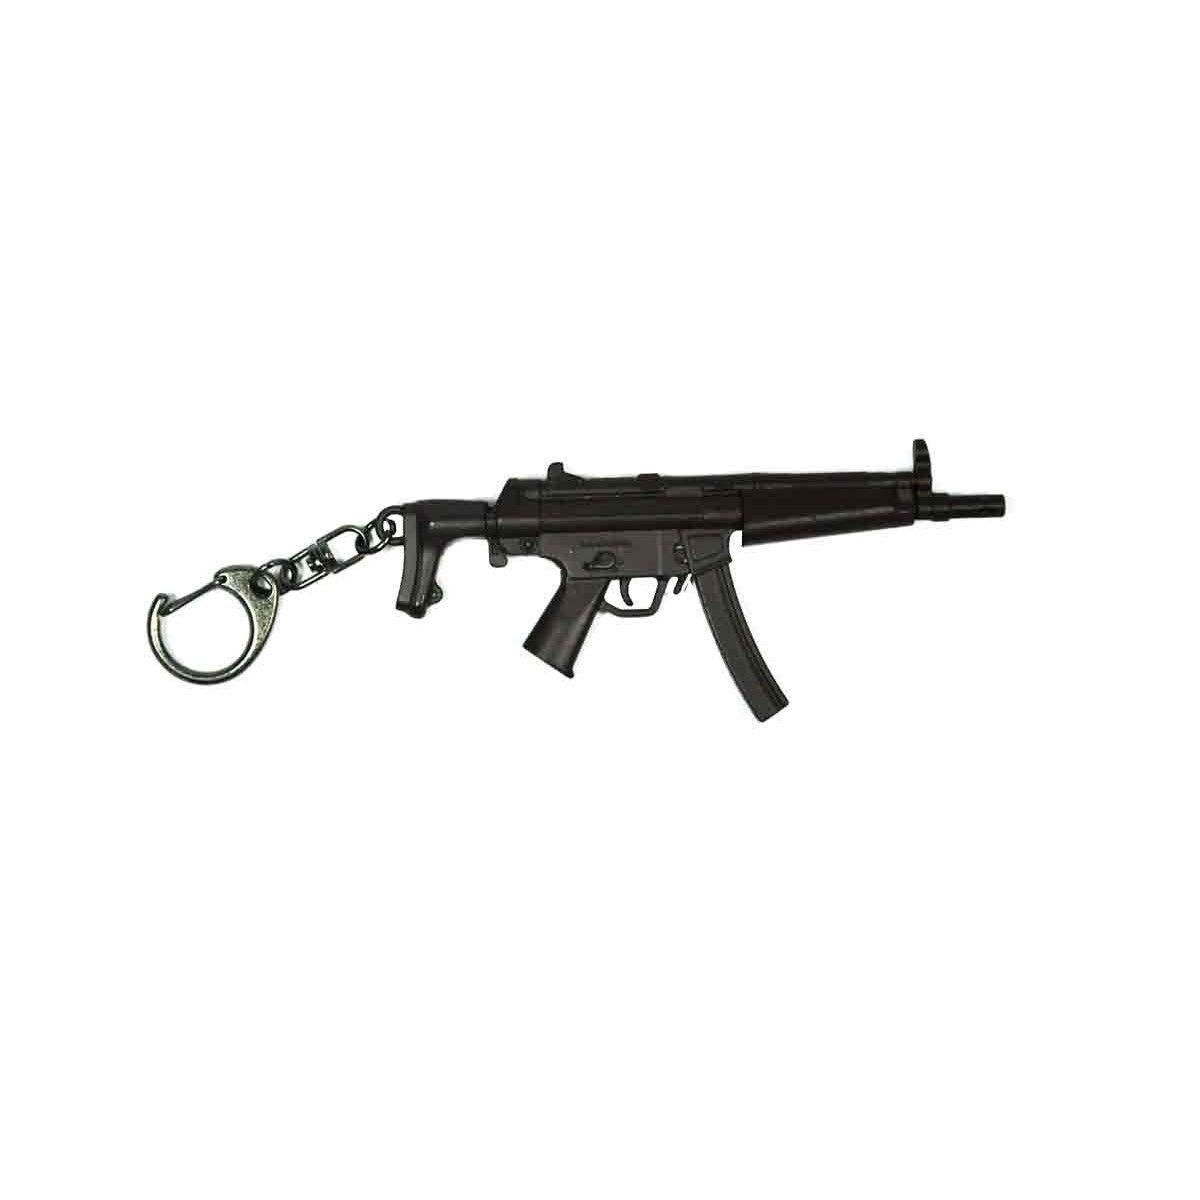 Chaveiro em Metal modelo Rifle MP5 - Arsenal Guns